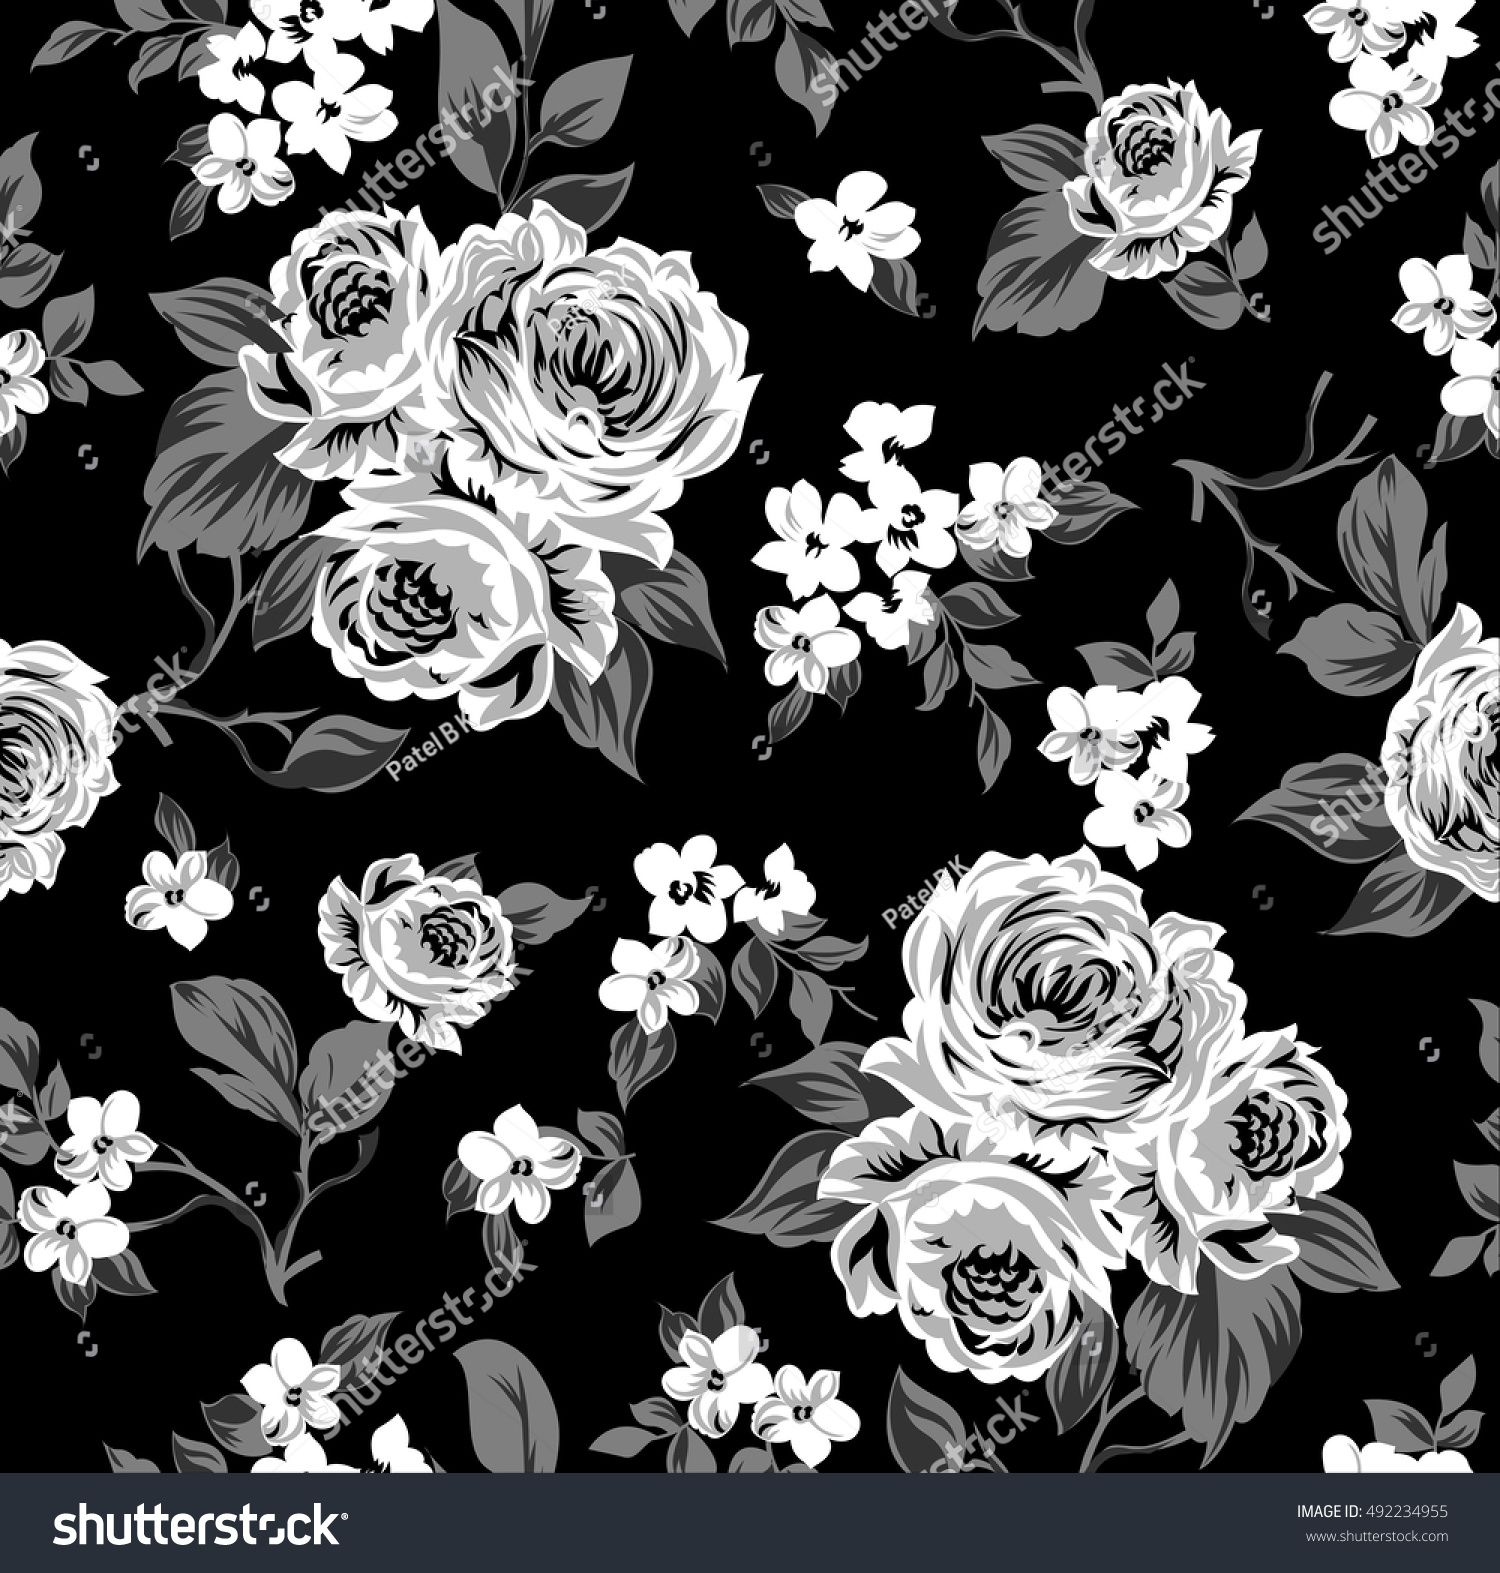 Seamless vector vintage pattern with Victorian bouquet of